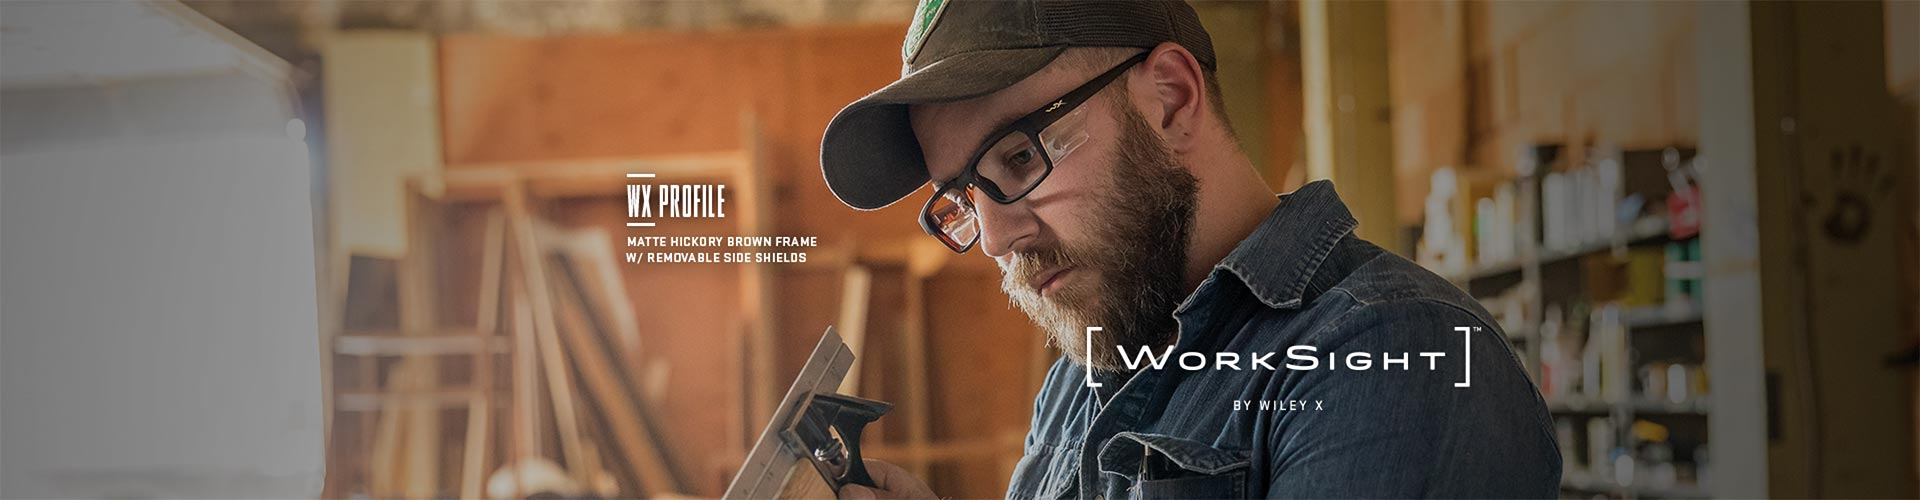 Shop Wiley X Worksight Eyeglasses & Sunglasses - model Profile featured